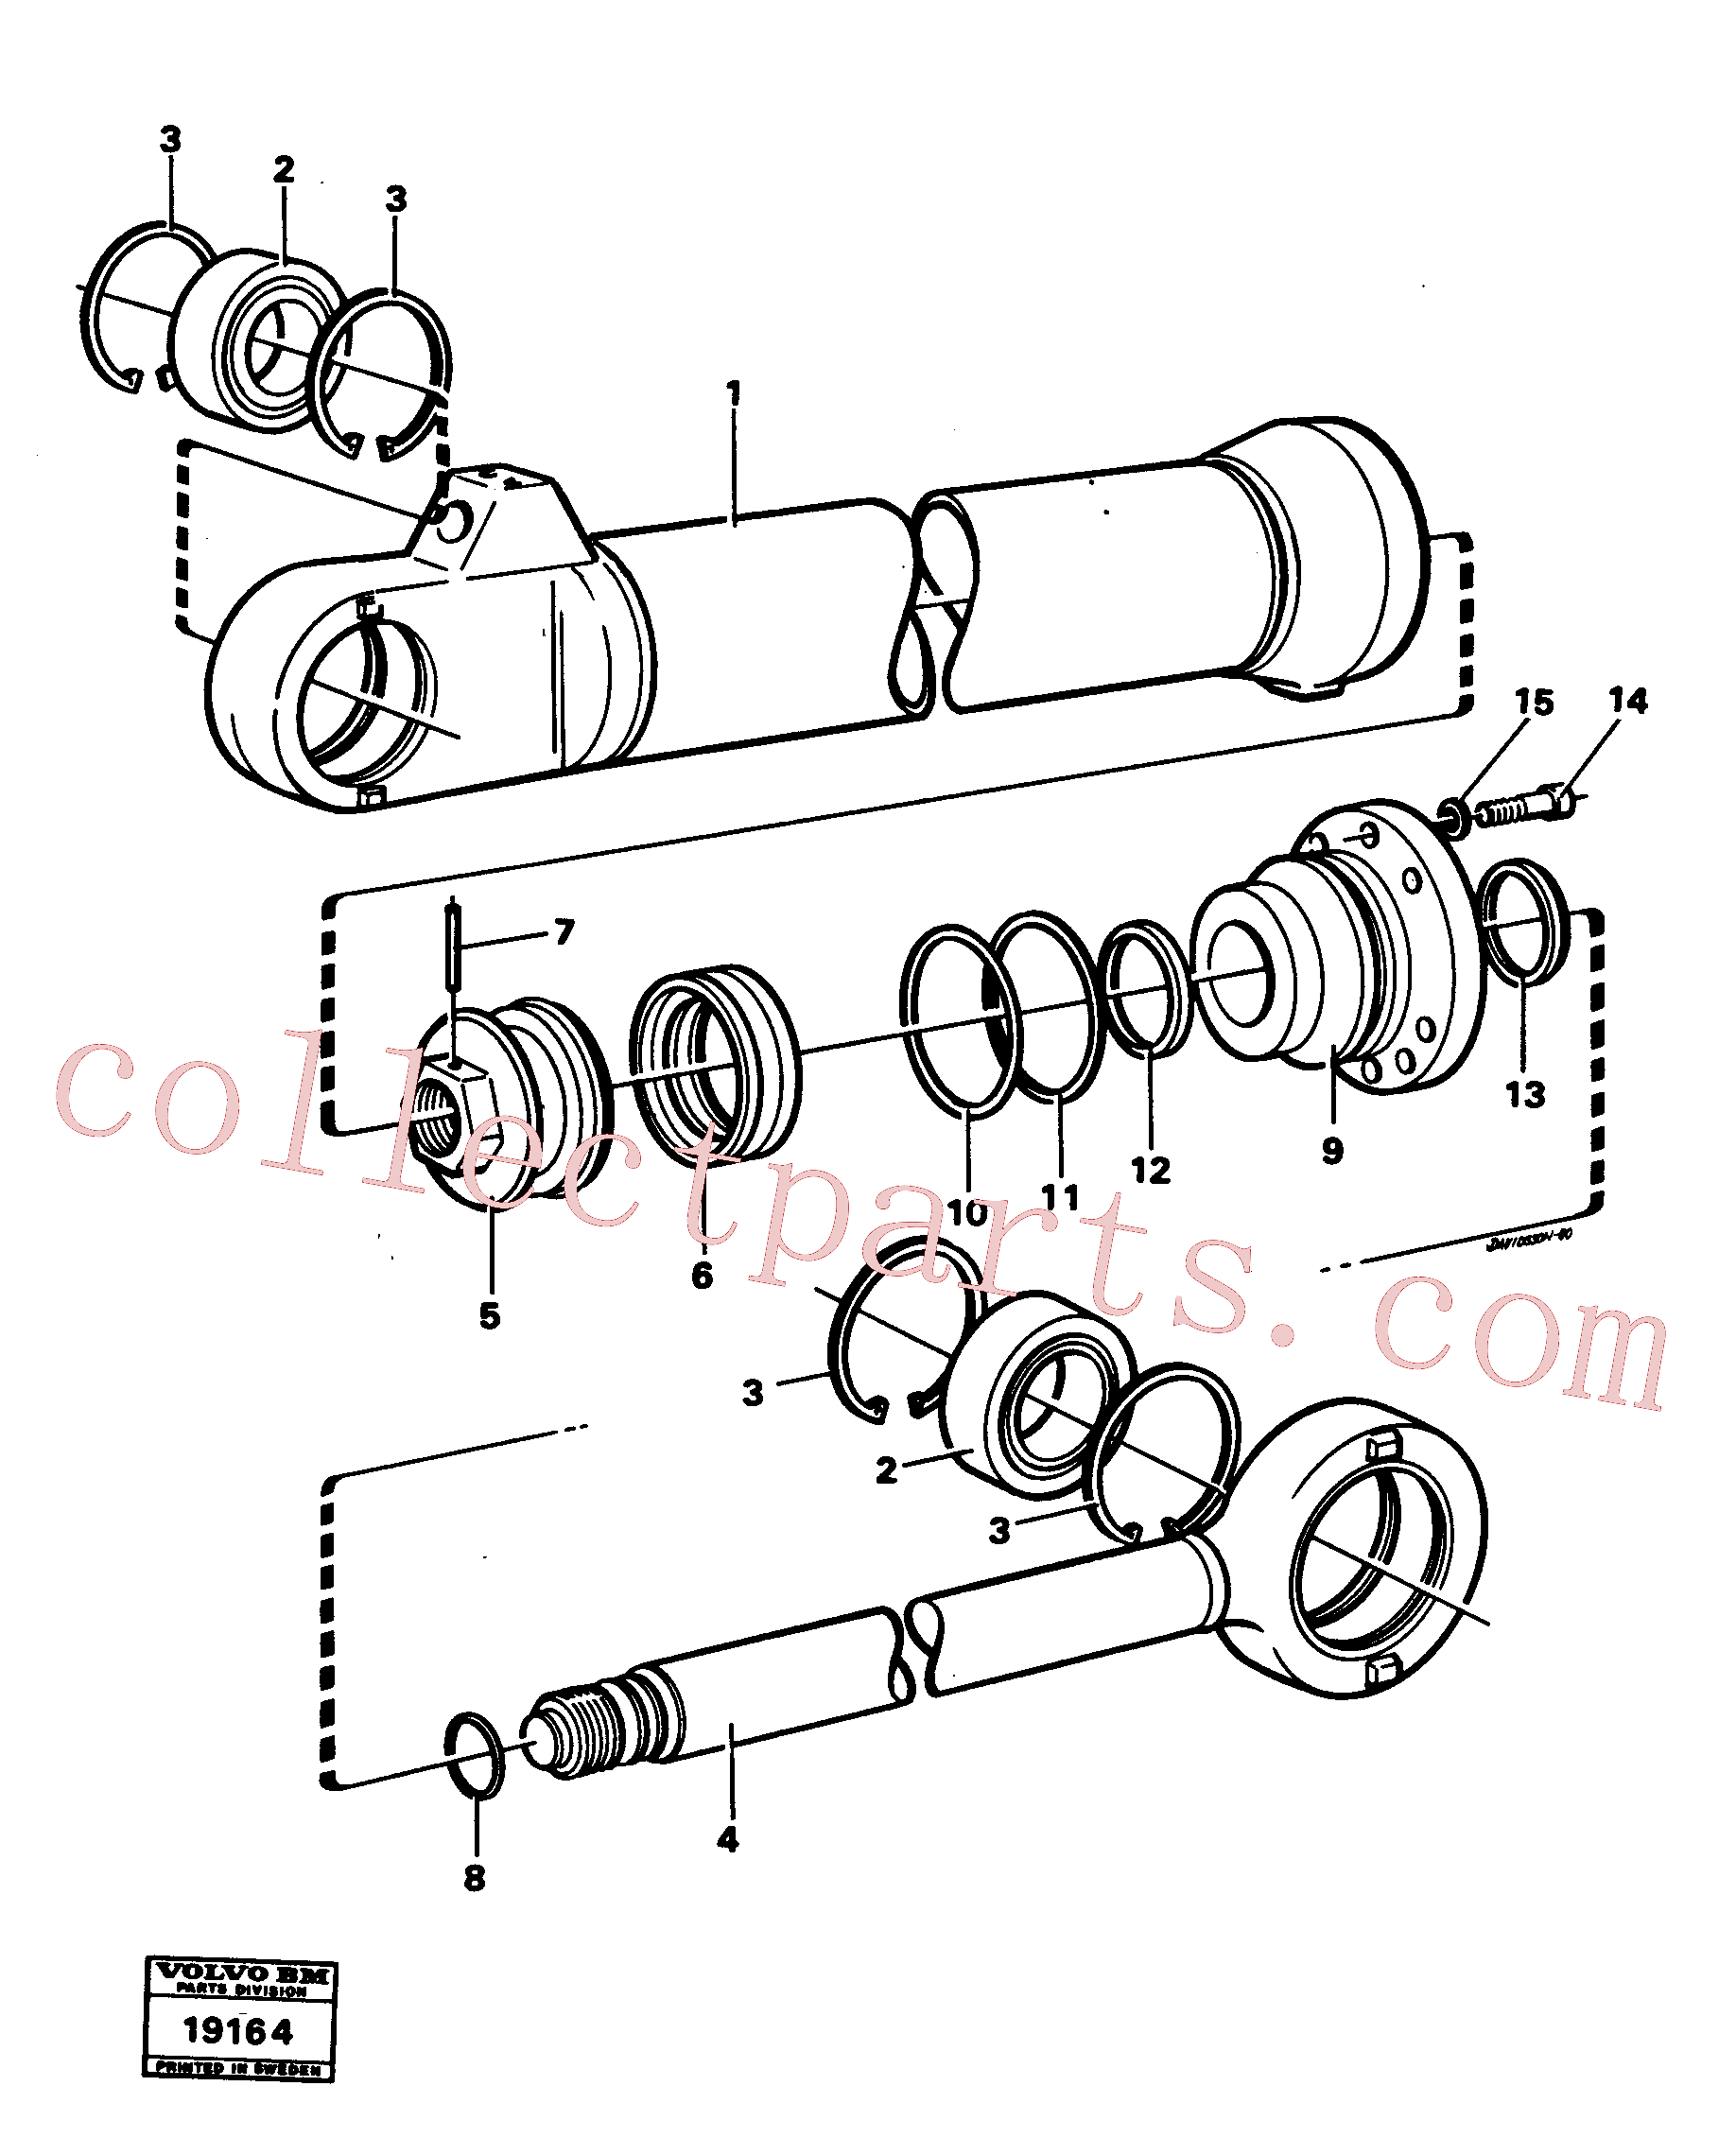 VOE11005200 for Volvo Hydraulic cylinder tilting(19164 assembly)